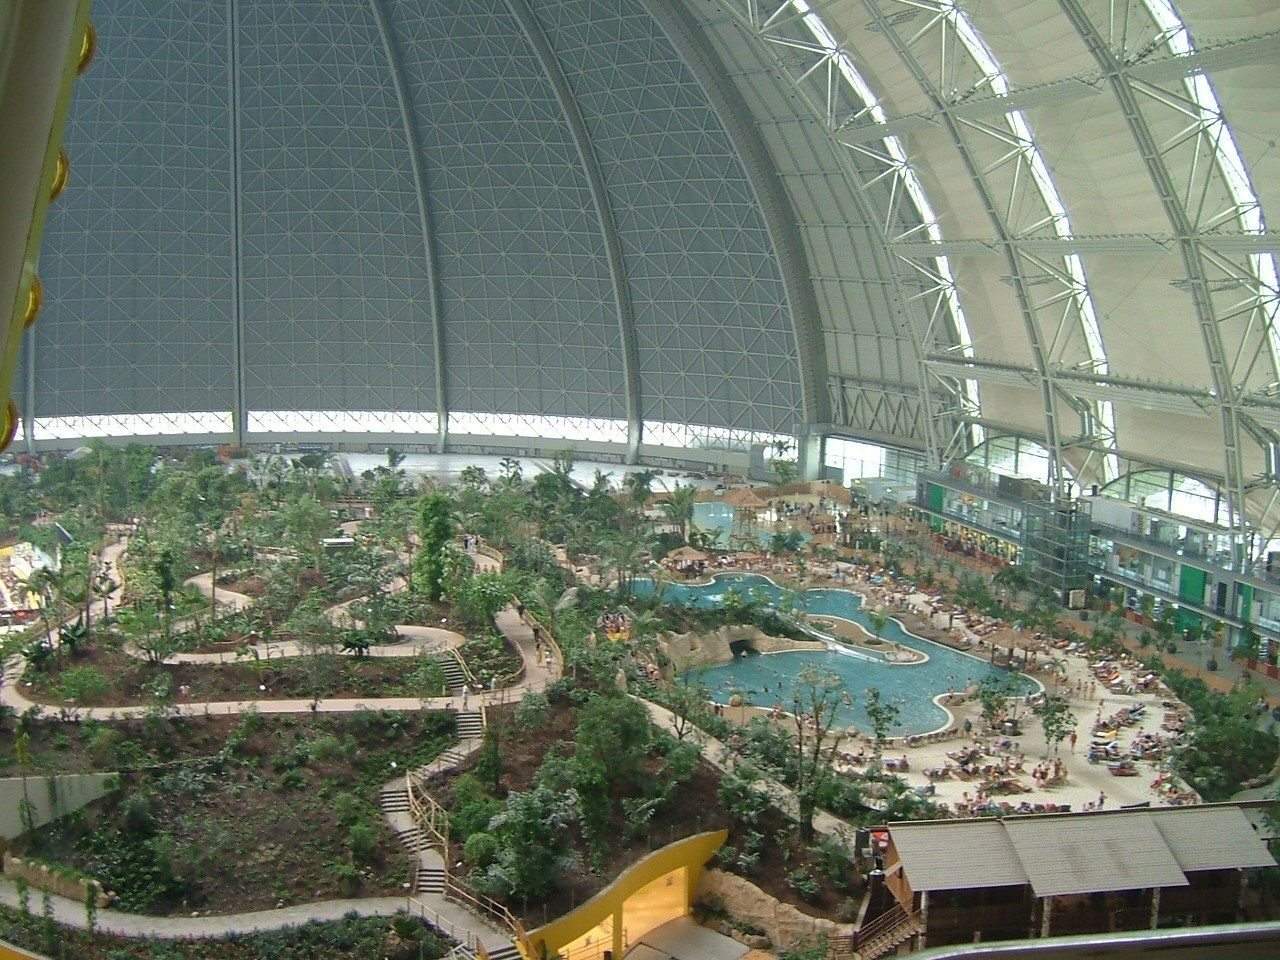 Swimmingpool Berlin Berlin Germany Tropical Island Swimming Pool Inside A Zeppelin